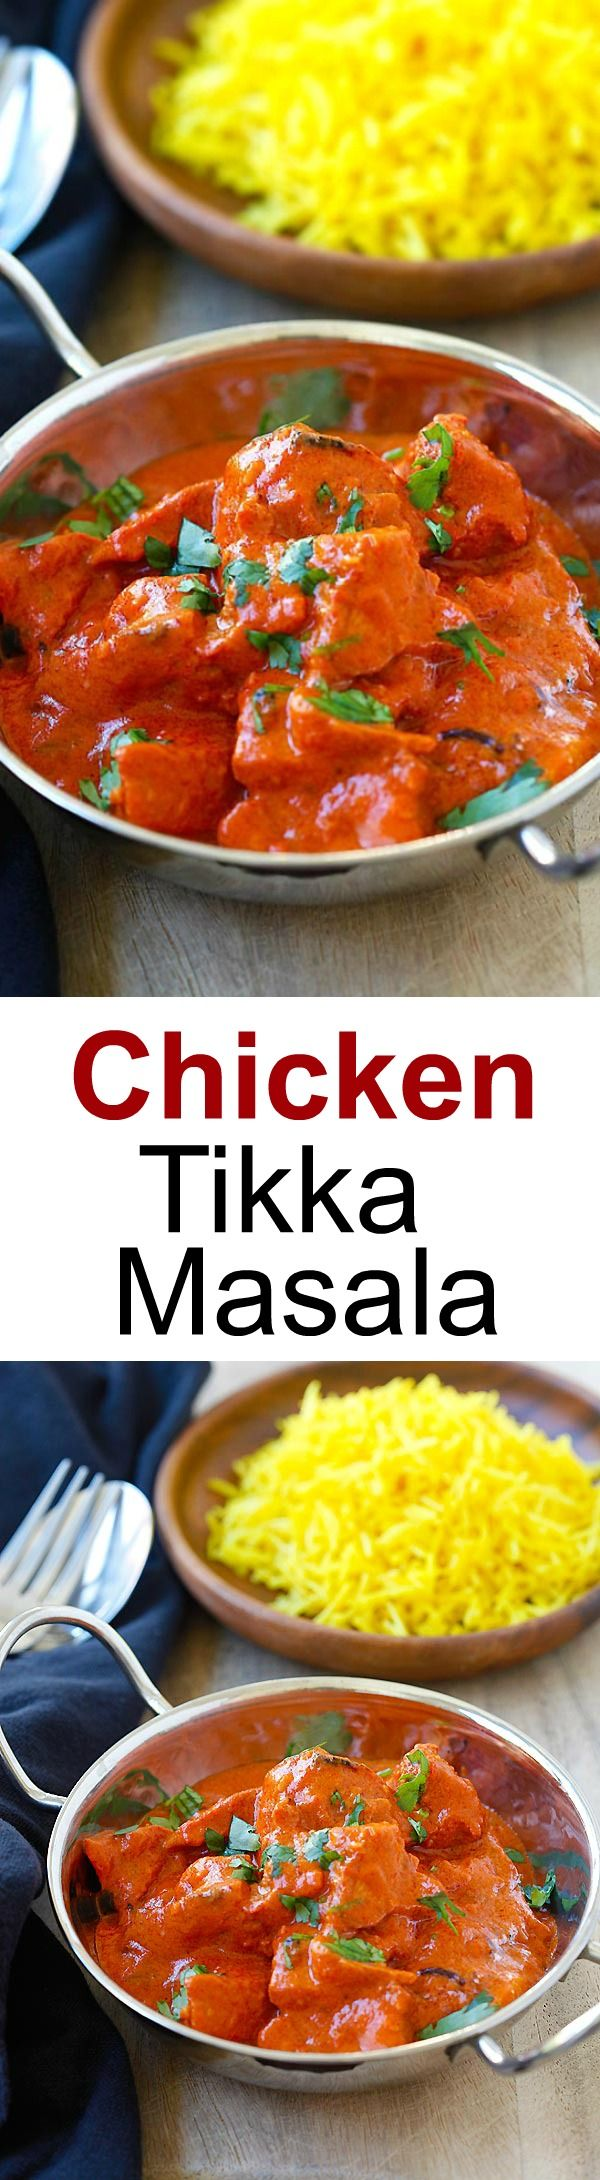 Chicken Tikka Masala - rich and creamy chicken curry with spicy tomato sauce. Chicken Tikka Masala is the most popular and delicious Indian recipe | rasamalaysia.com